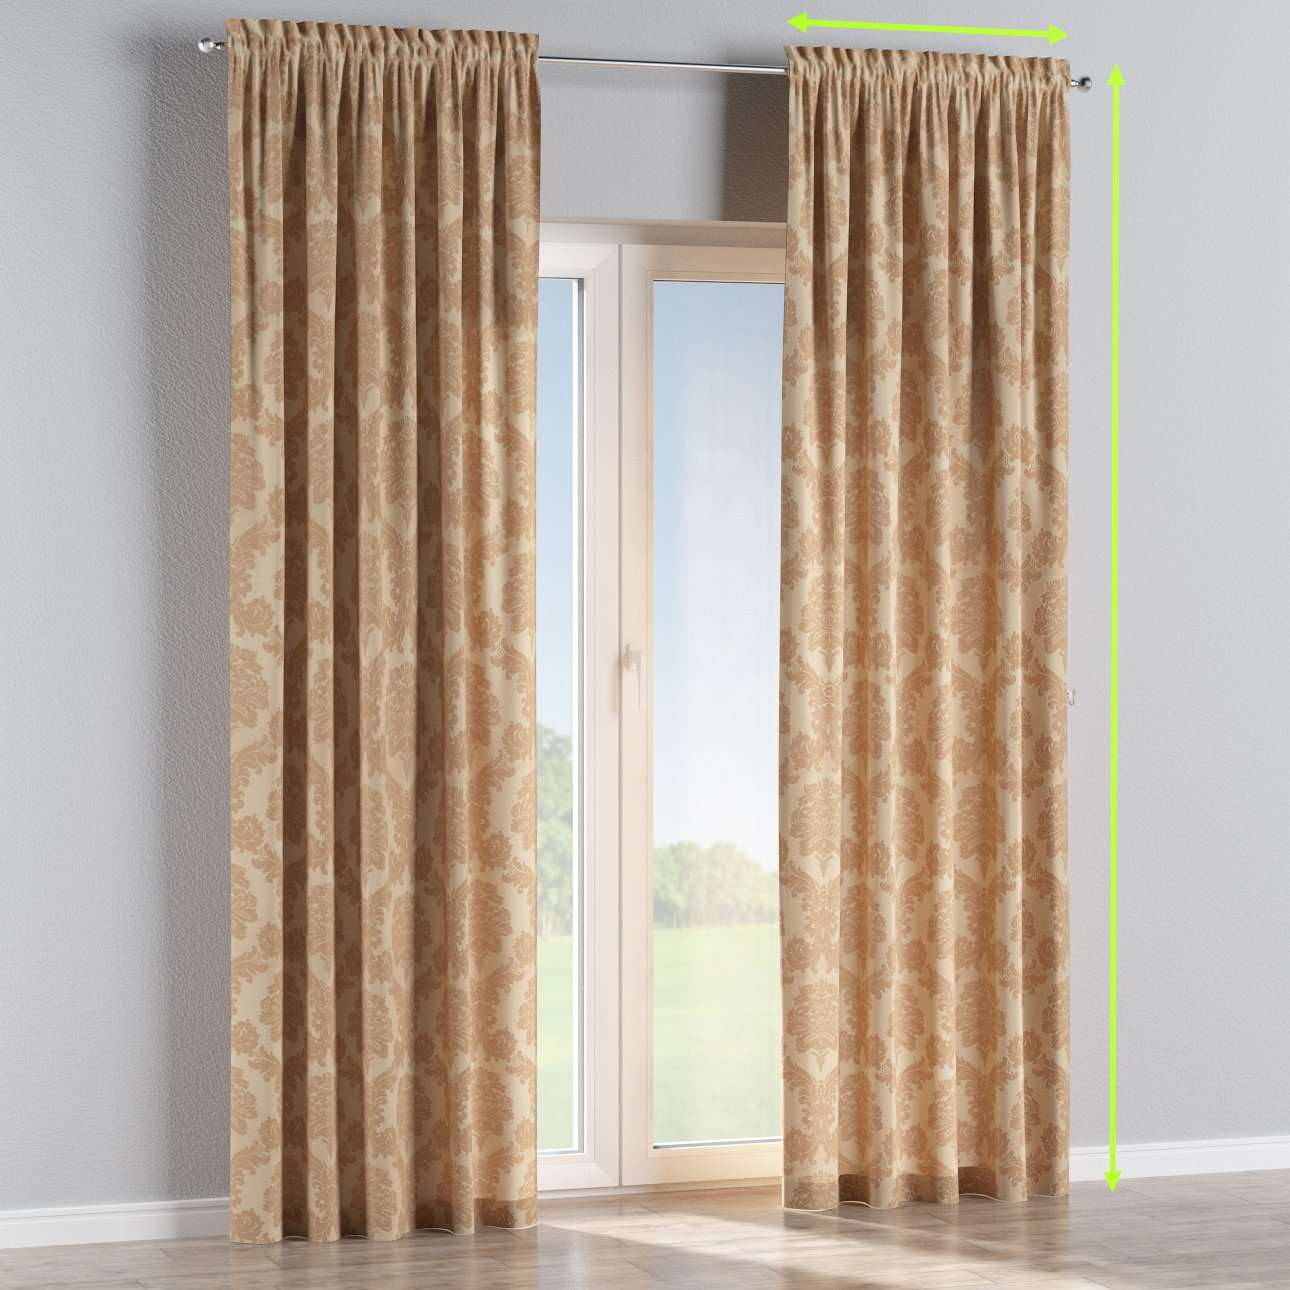 Slot and frill curtains in collection Damasco, fabric: 613-04